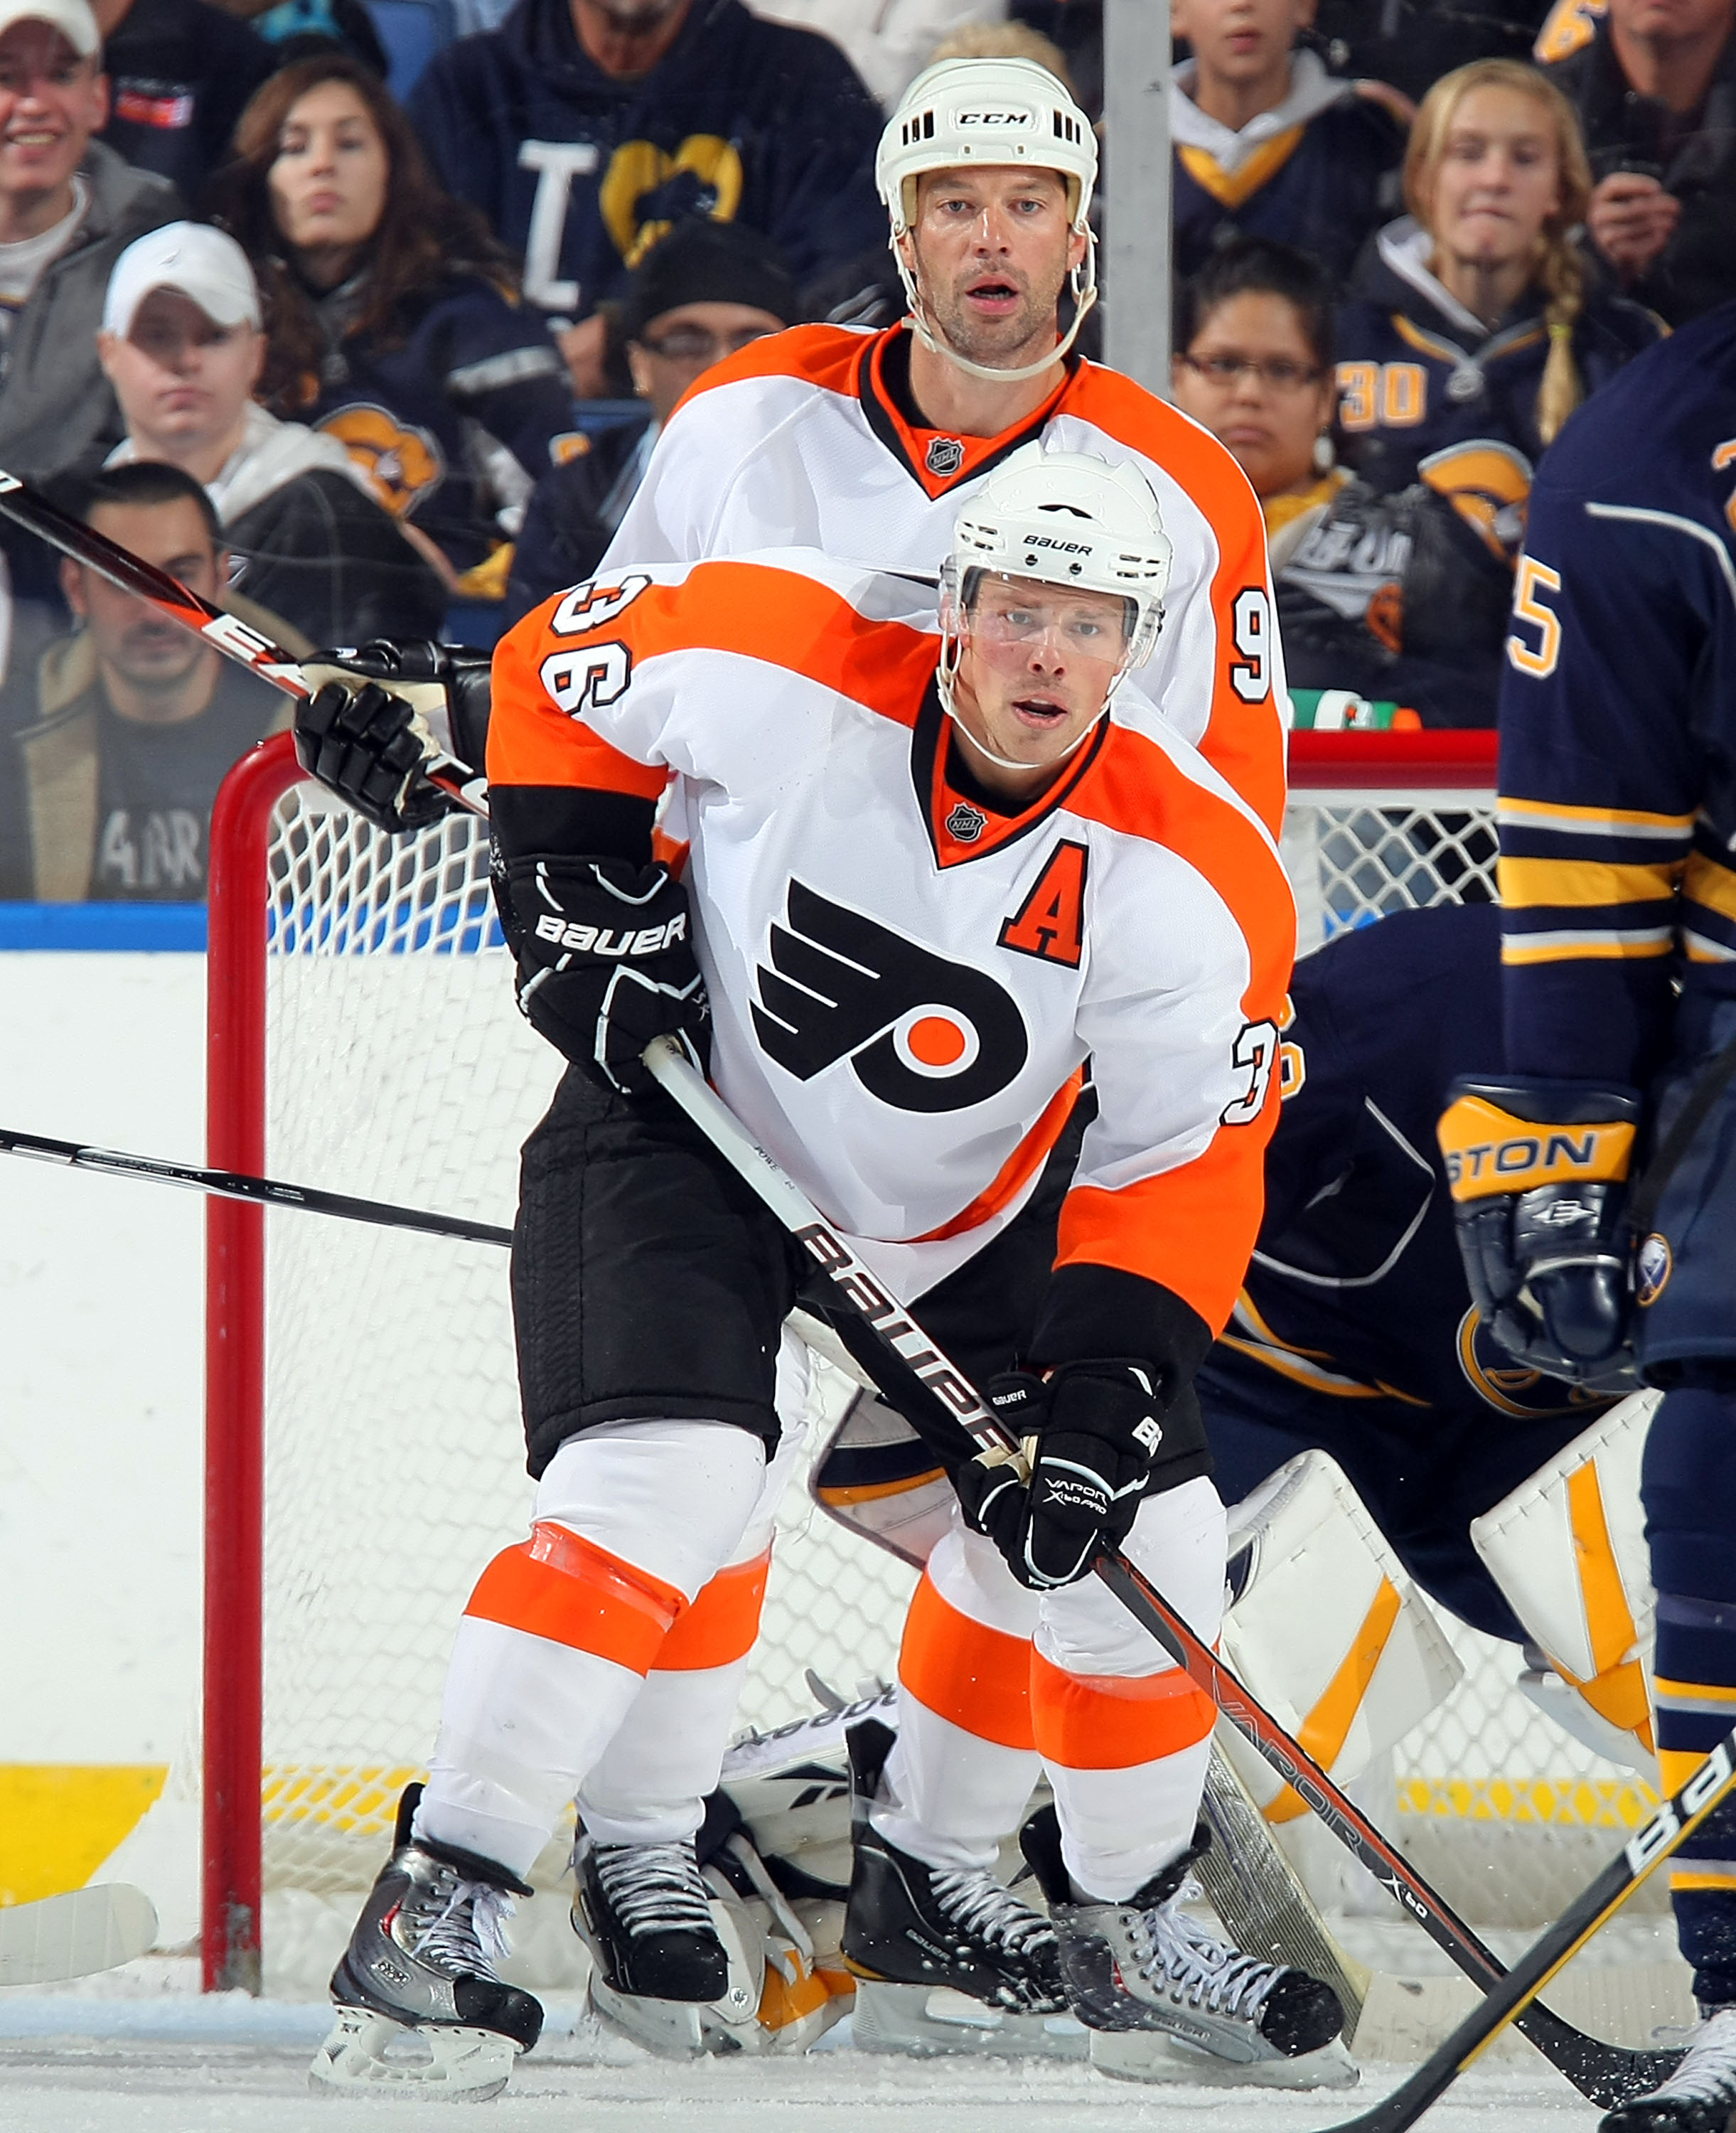 BUFFALO - OCTOBER 3:  Bill Guerin #9 and Darroll Powe #36 both of the Philadelphia Flyers set up in front of the Buffalo Sabres net during their NHL game at HSBC Arena October 3, 2010 in Buffalo, New York. The Sabres won 9-3. (Photo By Dave Sandford/Getty